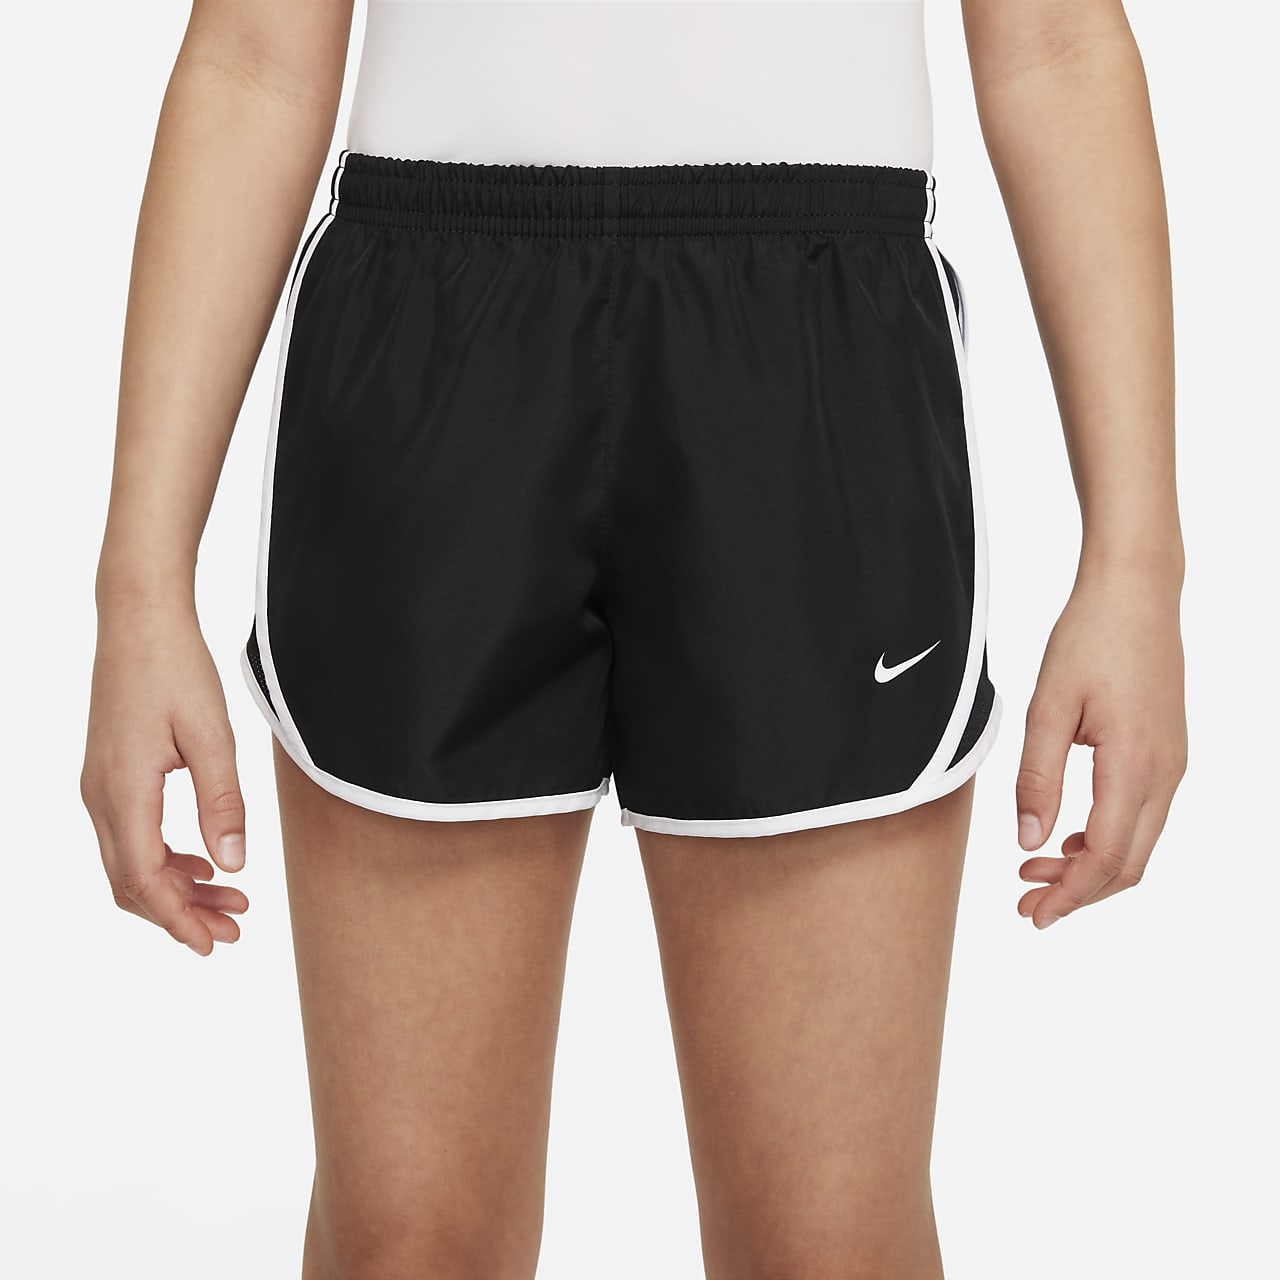 3a453fafb41f7 Nike Dri-FIT Tempo Older Kids  (Girls ) Running Shorts. Nike.com SG